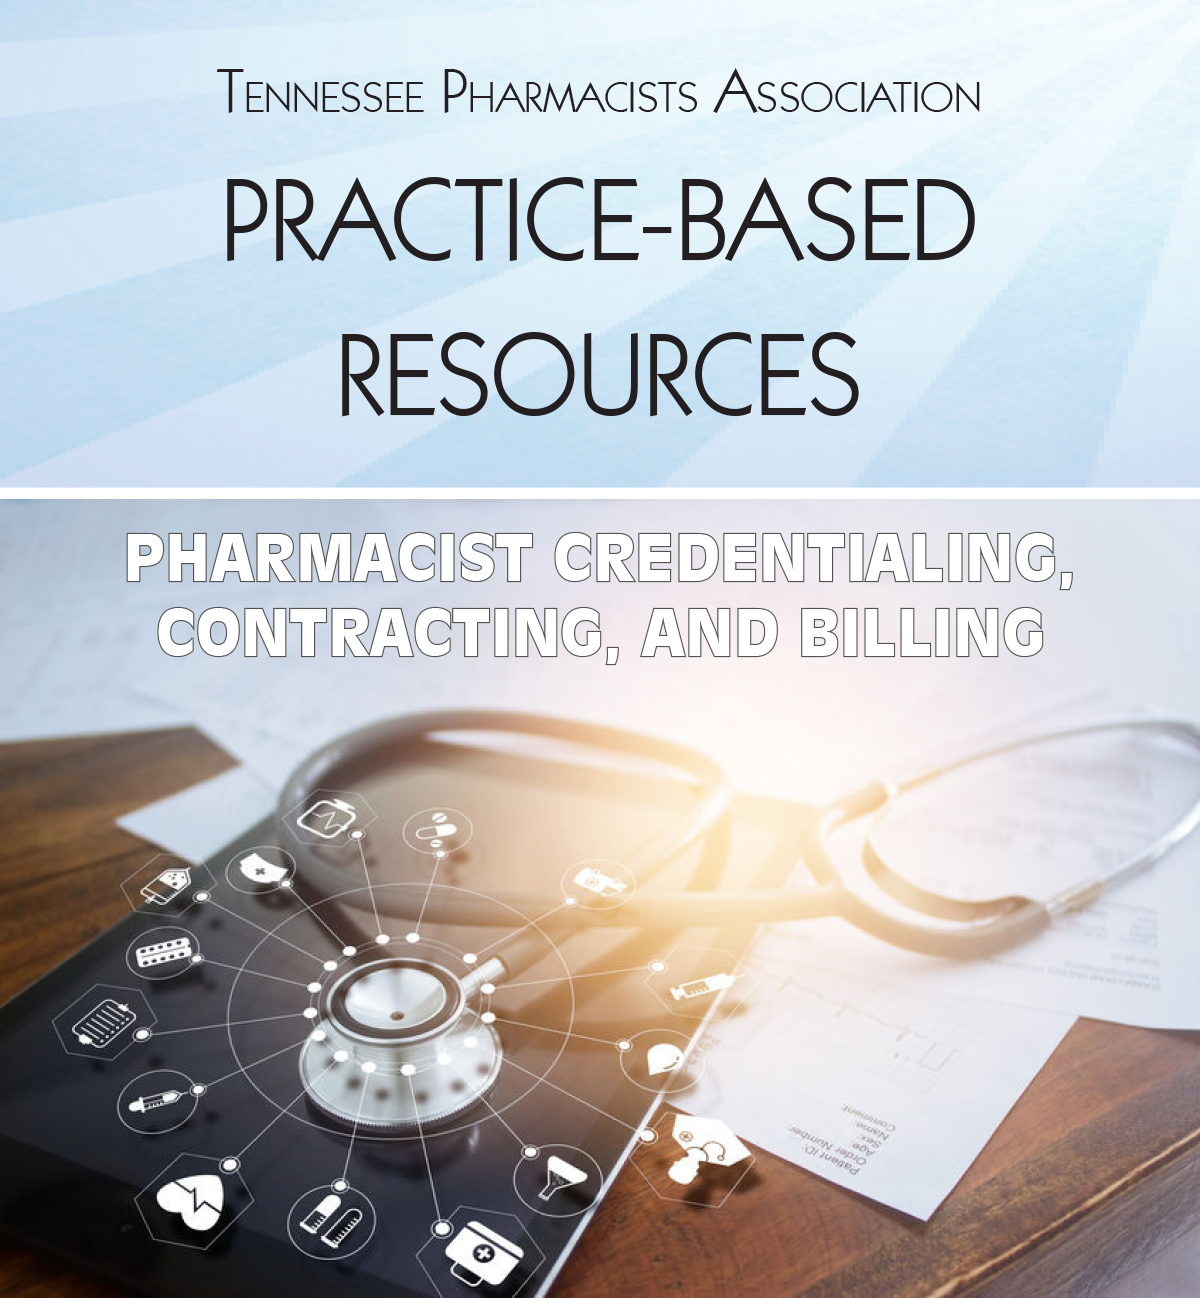 Pharmacist Credentialing, Contracting, and Billing